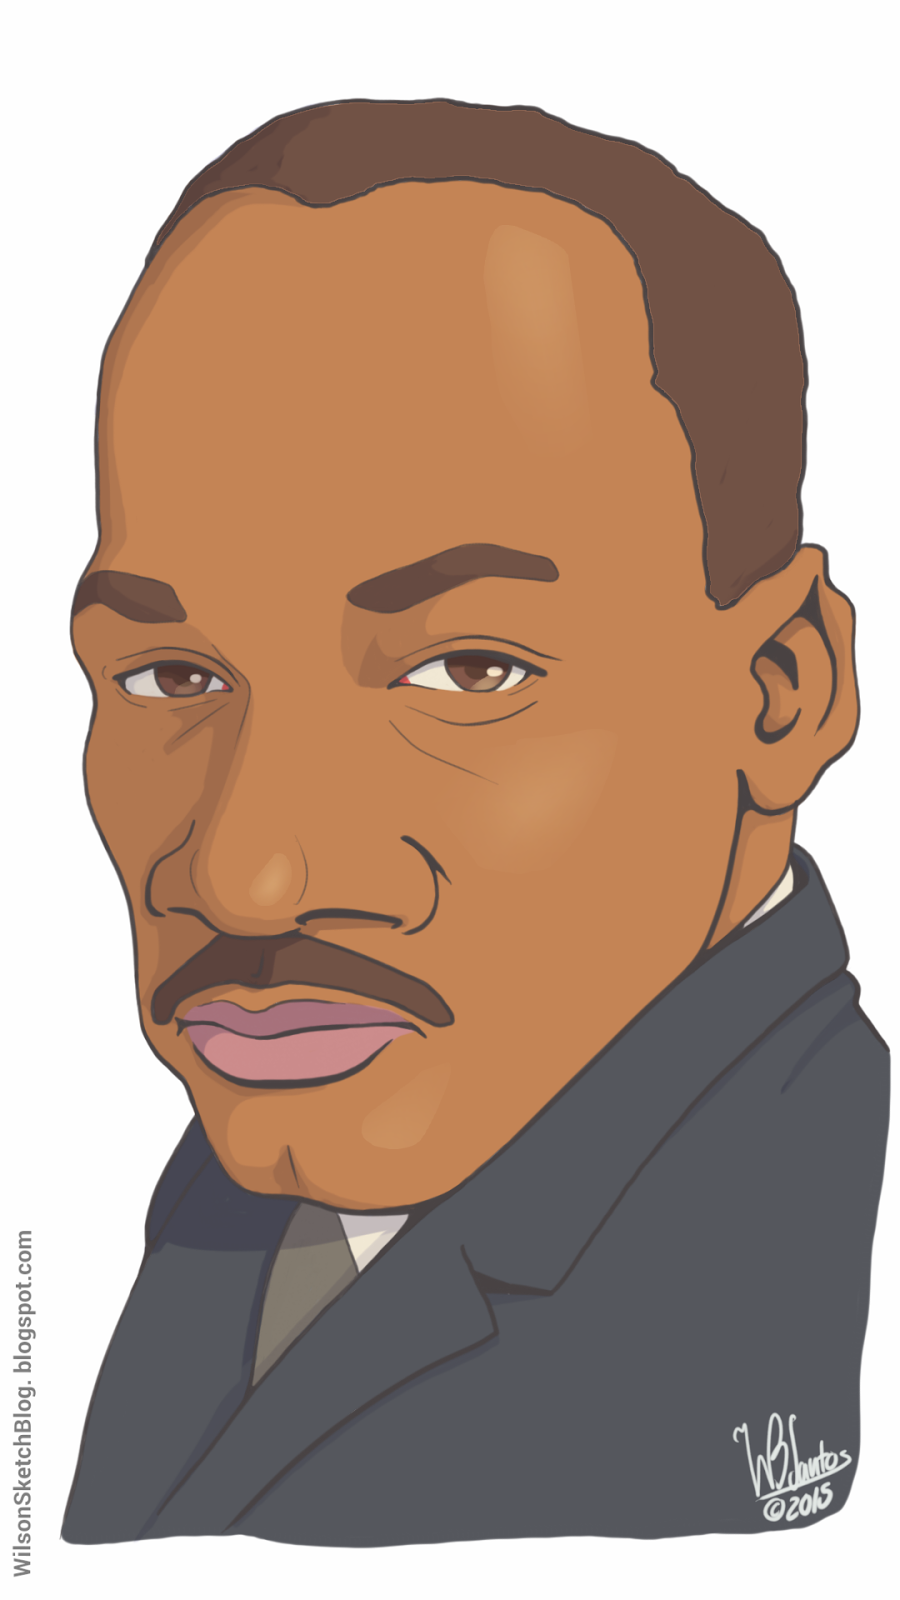 Uncategorized Martin Luther King Jr Cartoon Movie martin luther king jr cartoon caricature